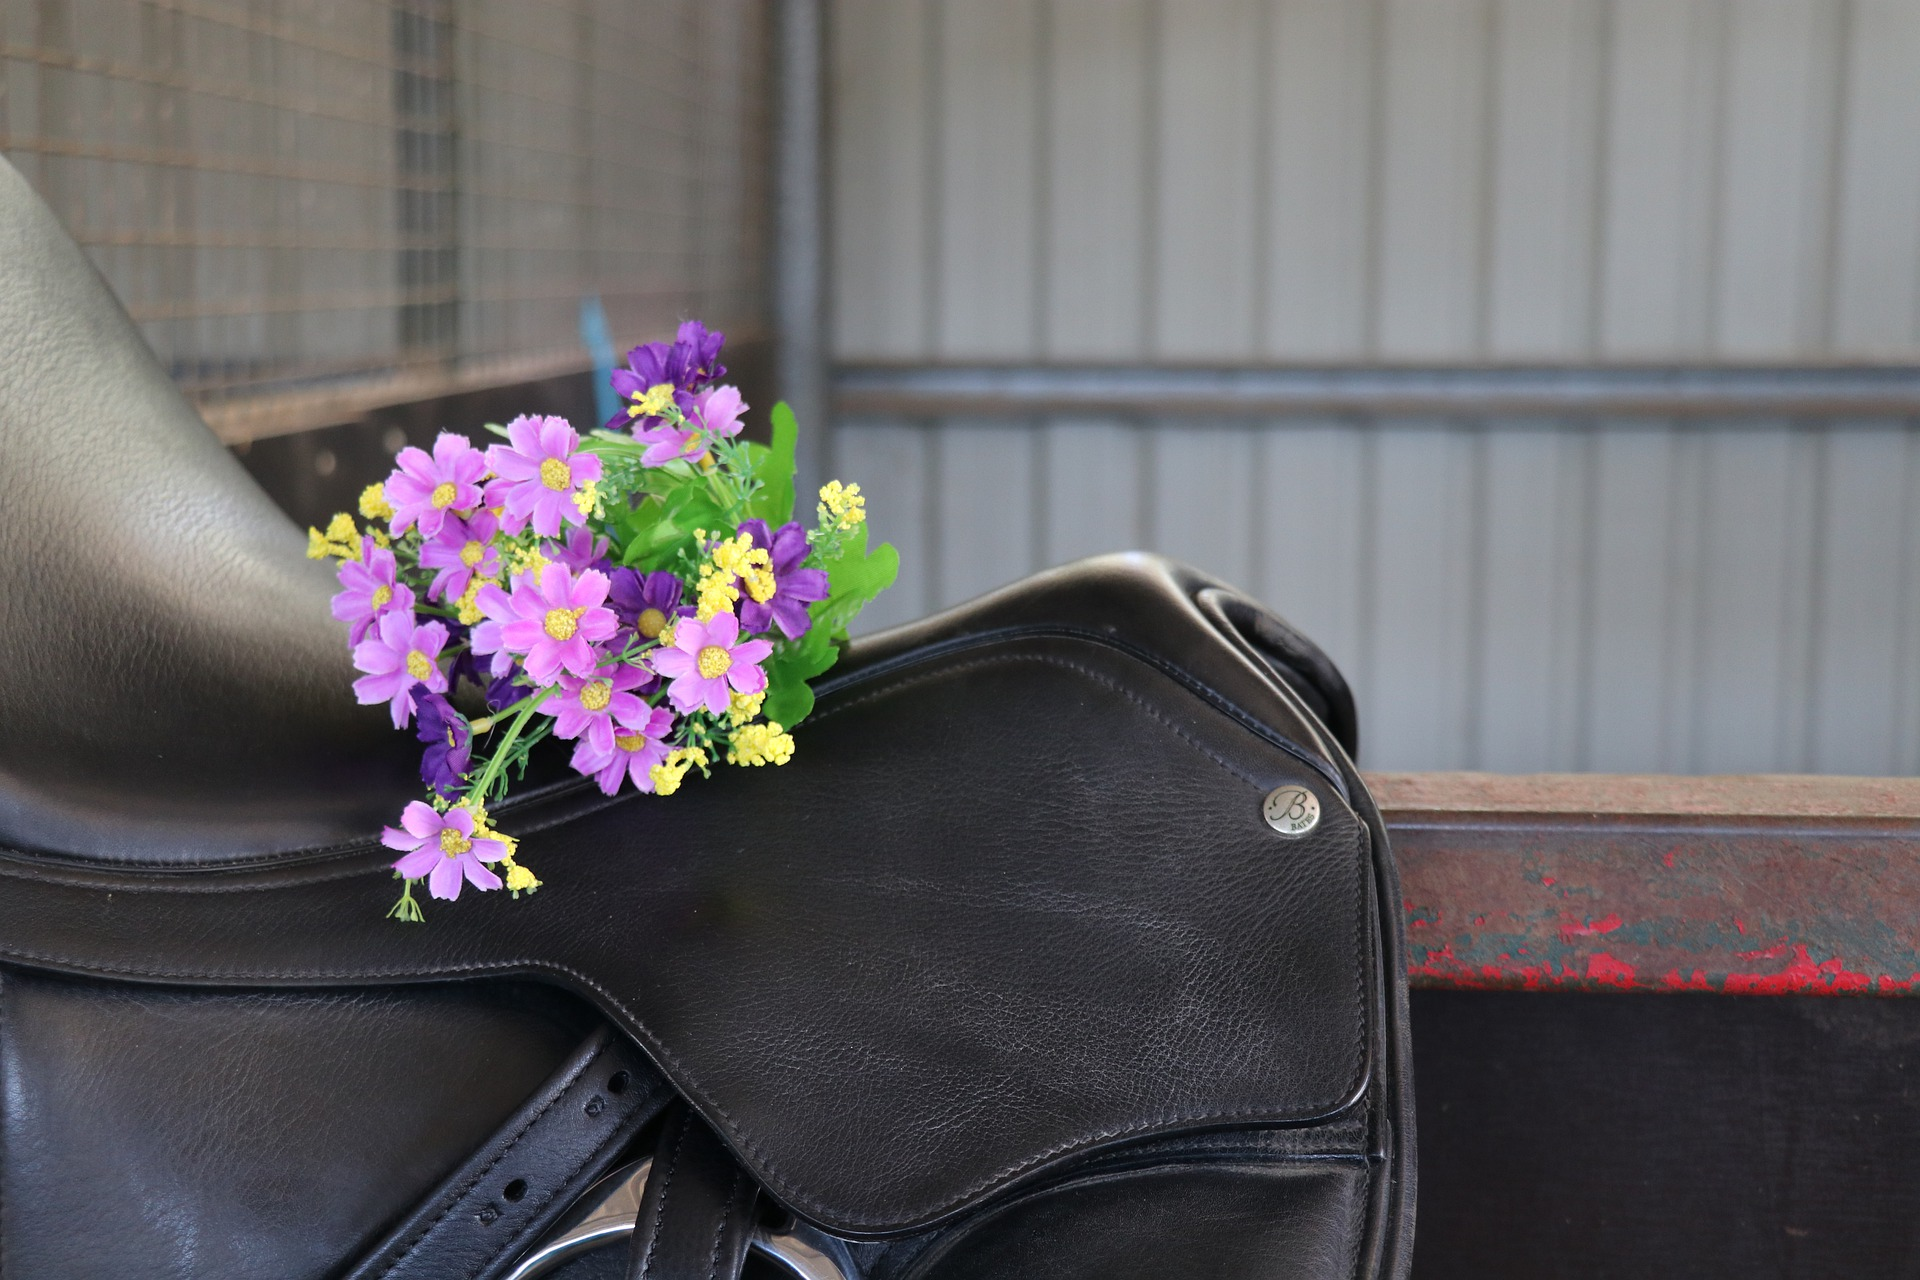 a less expensive used saddle with flowers